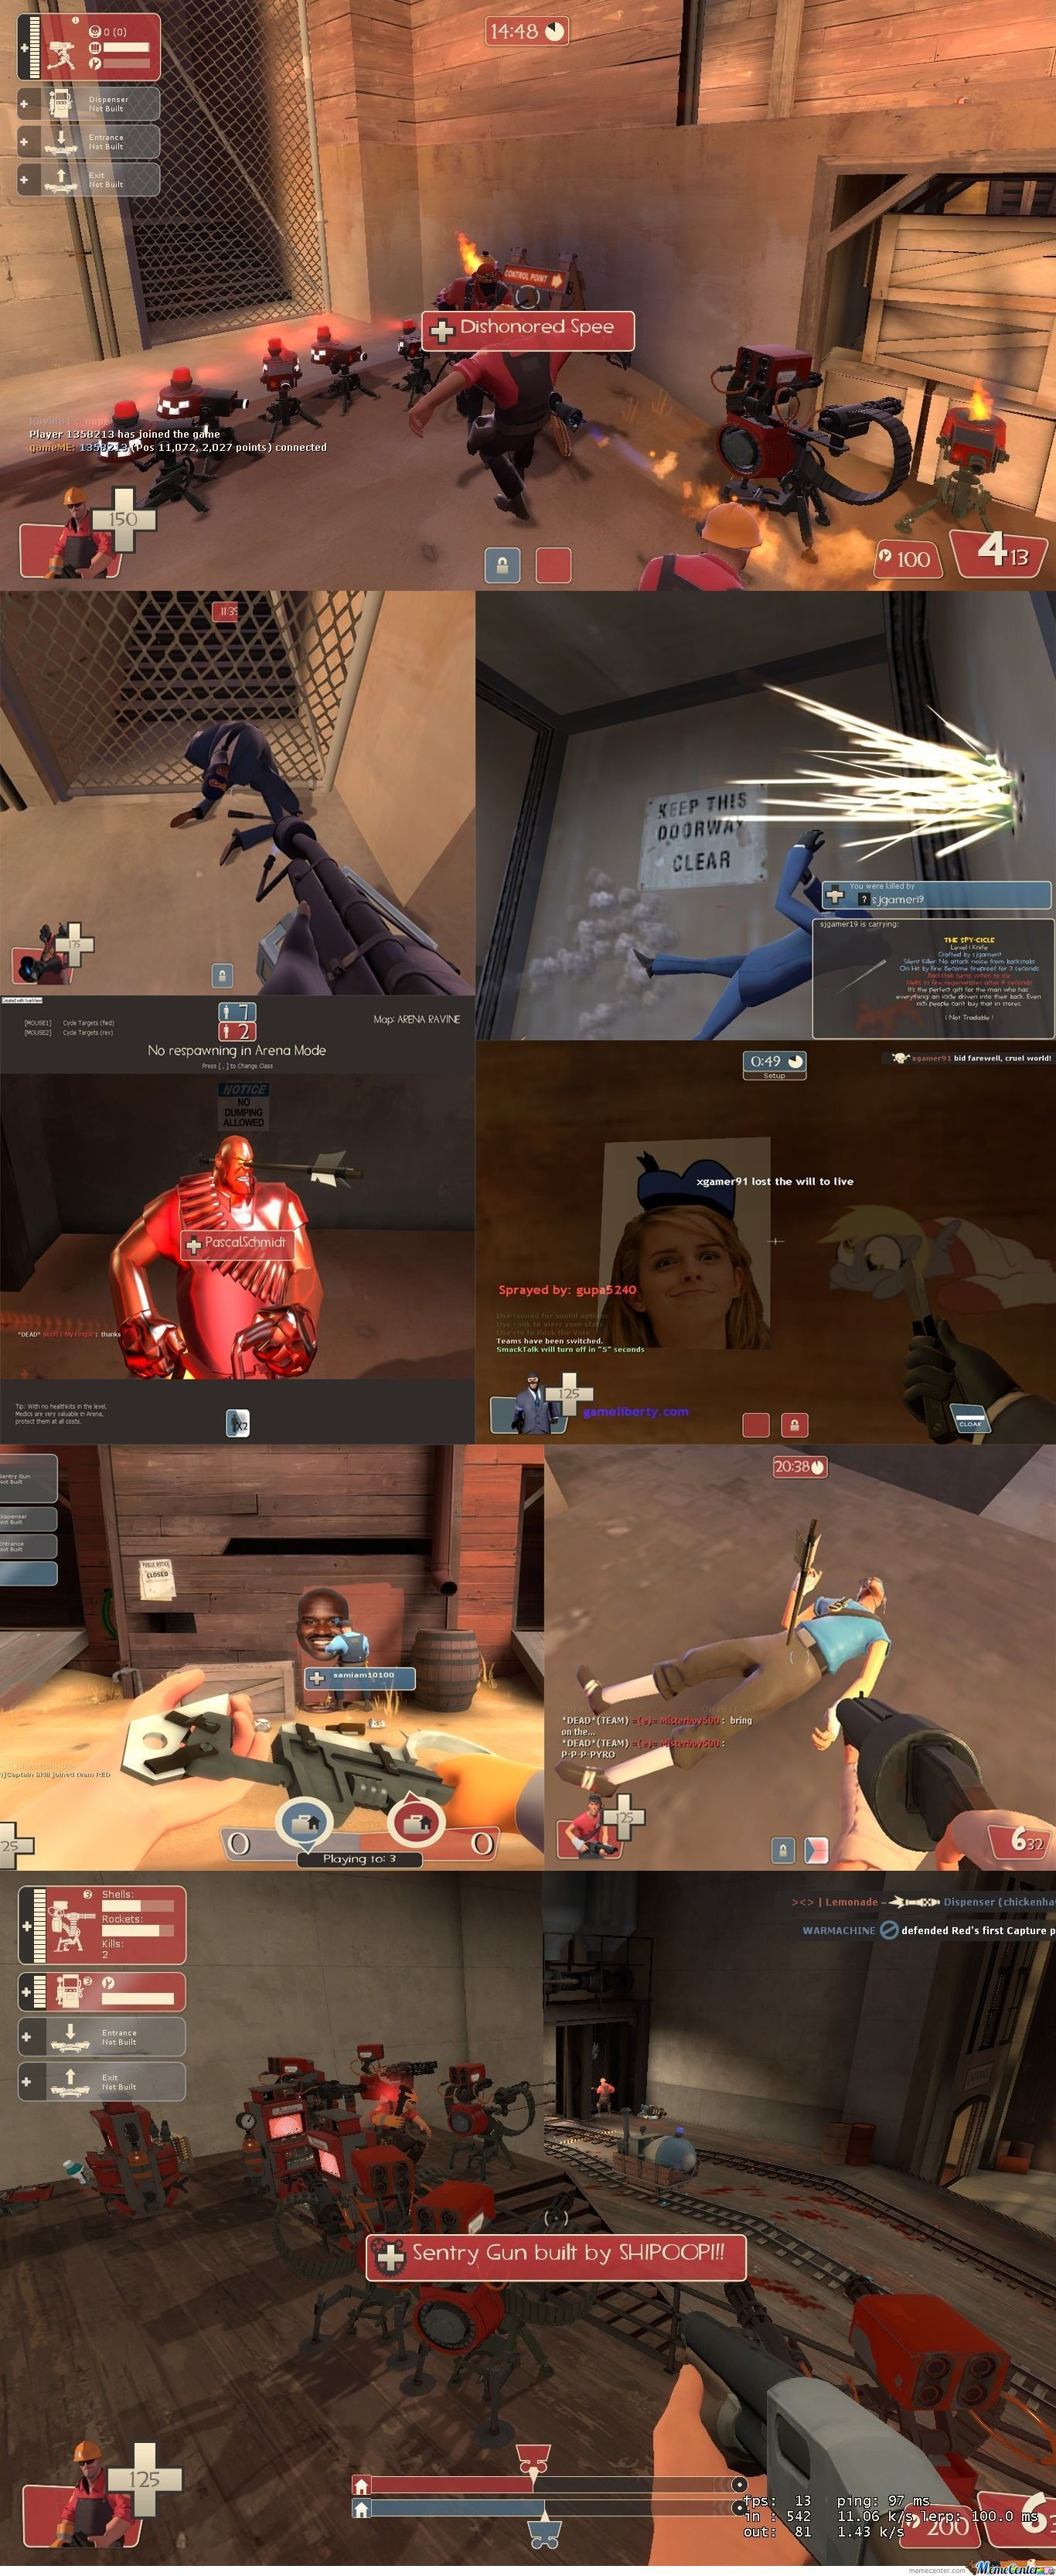 Meanwhile On Team Fortress 2...